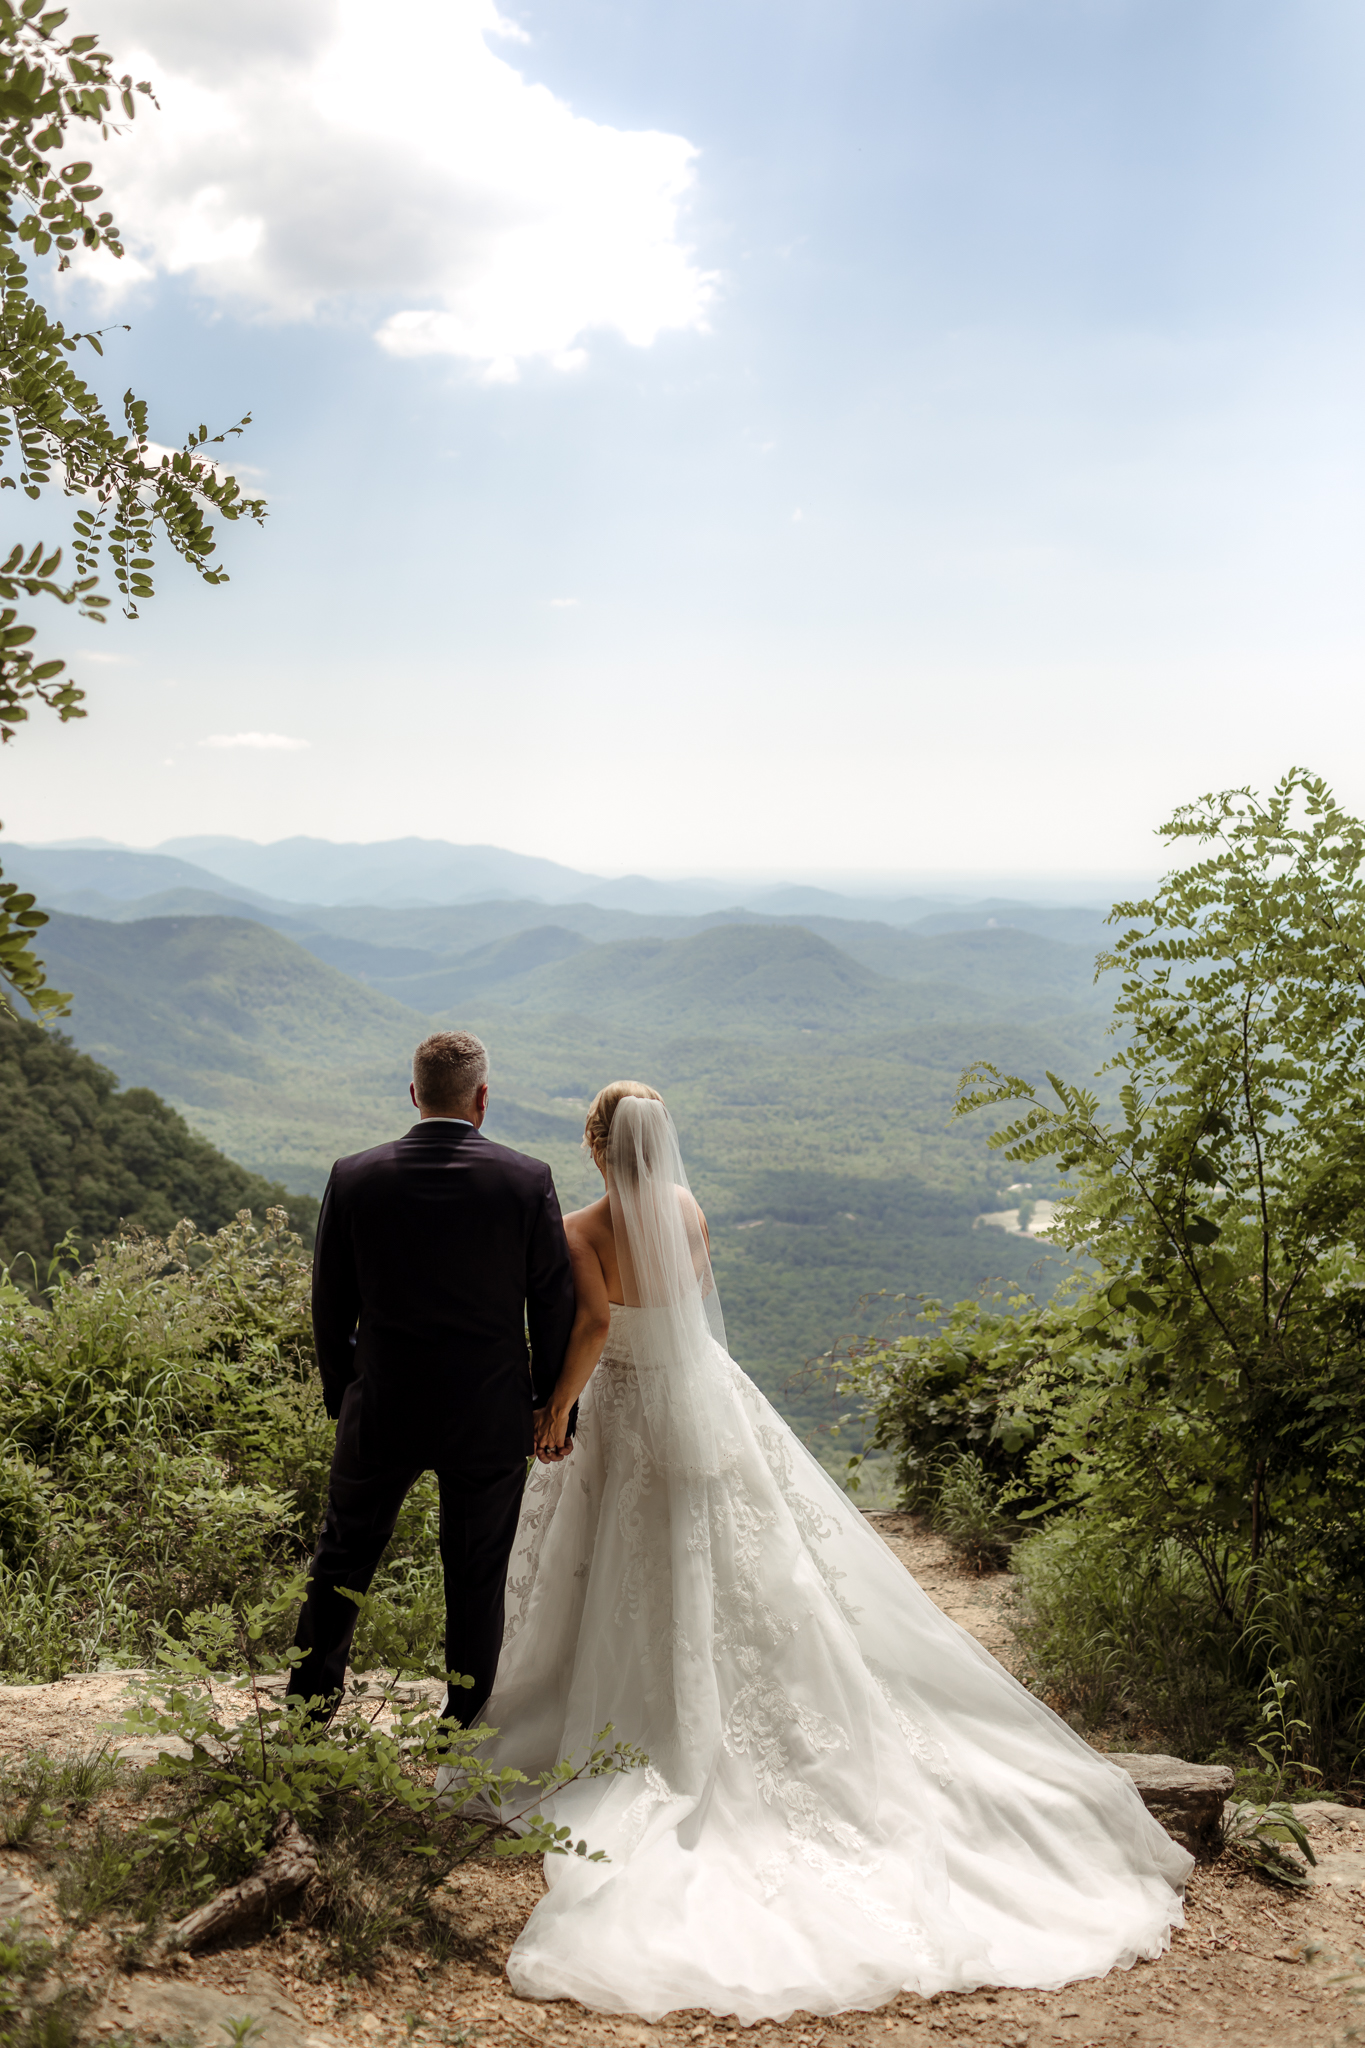 pretty place, pretty place wedding, brevard nc, brevard, jenni chandler photography, wnc events, inc wedding, inc weddings and events, petal and fern, fred simmer chapel, camp greenville, pretty place wedding, asheville wedding photographer, brevard wedding photographer, greenville wedding photographer, elopement, elopement wedding, intimate wedding photographer, mountain wedding, boho wedding, rustic wedding, blue ridge parkway, blue ridge mountains, pisgah national forest, wnc photographer, blue ridge moments, blue ridge engagement, nc wedding photographer, nc engagement photographer, jenni chandler, natural light photographer, key falls inn, key falls inn wedding reception, key falls, key falls waterfall, bride, groom, nc wedding, souther bride and groom, dirty boots and messy hair